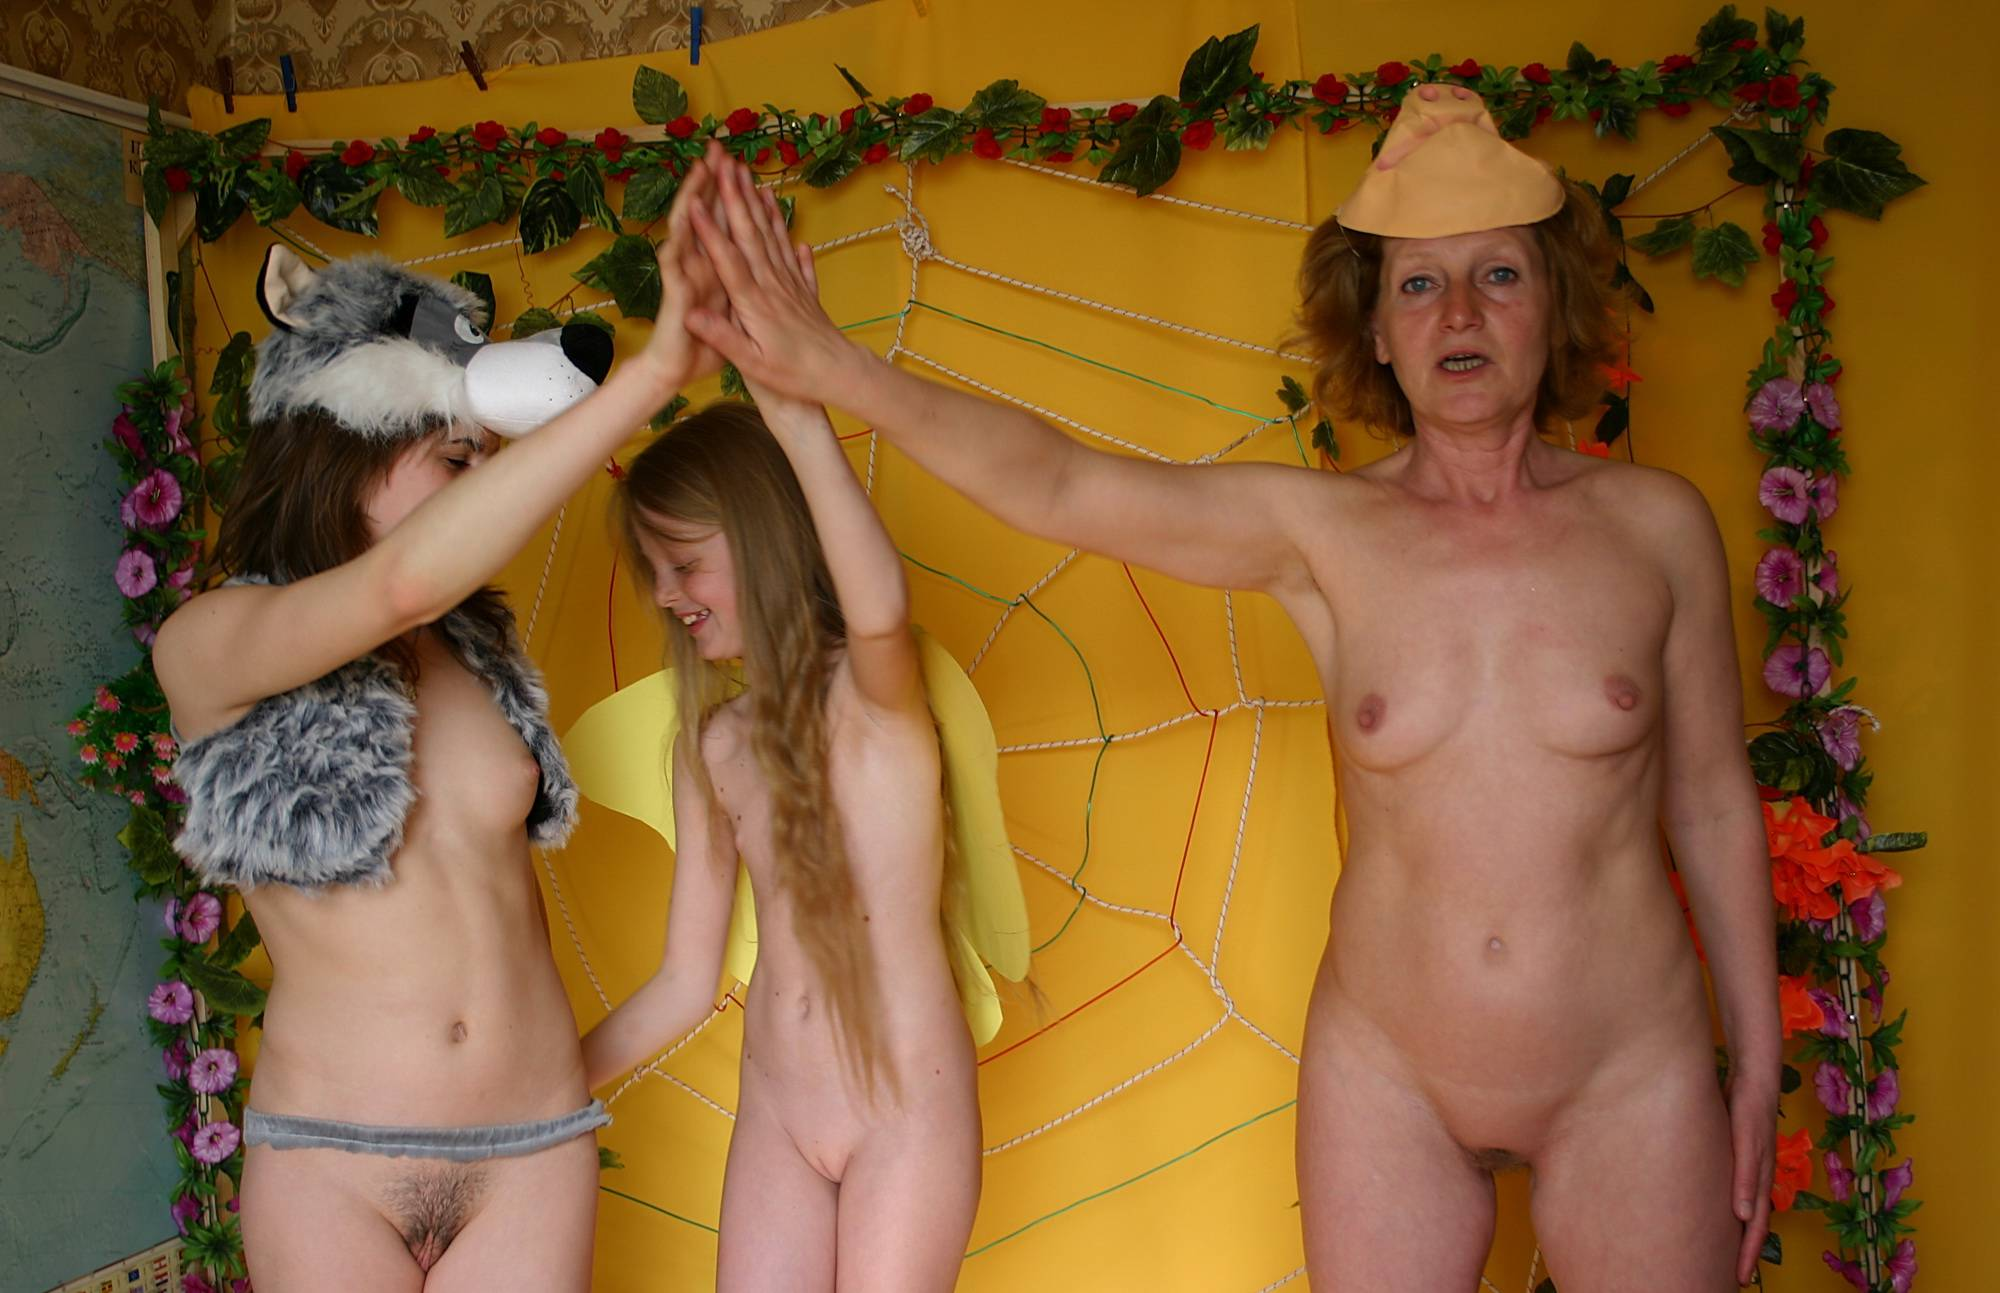 Nudist and Woolf Costume - 1